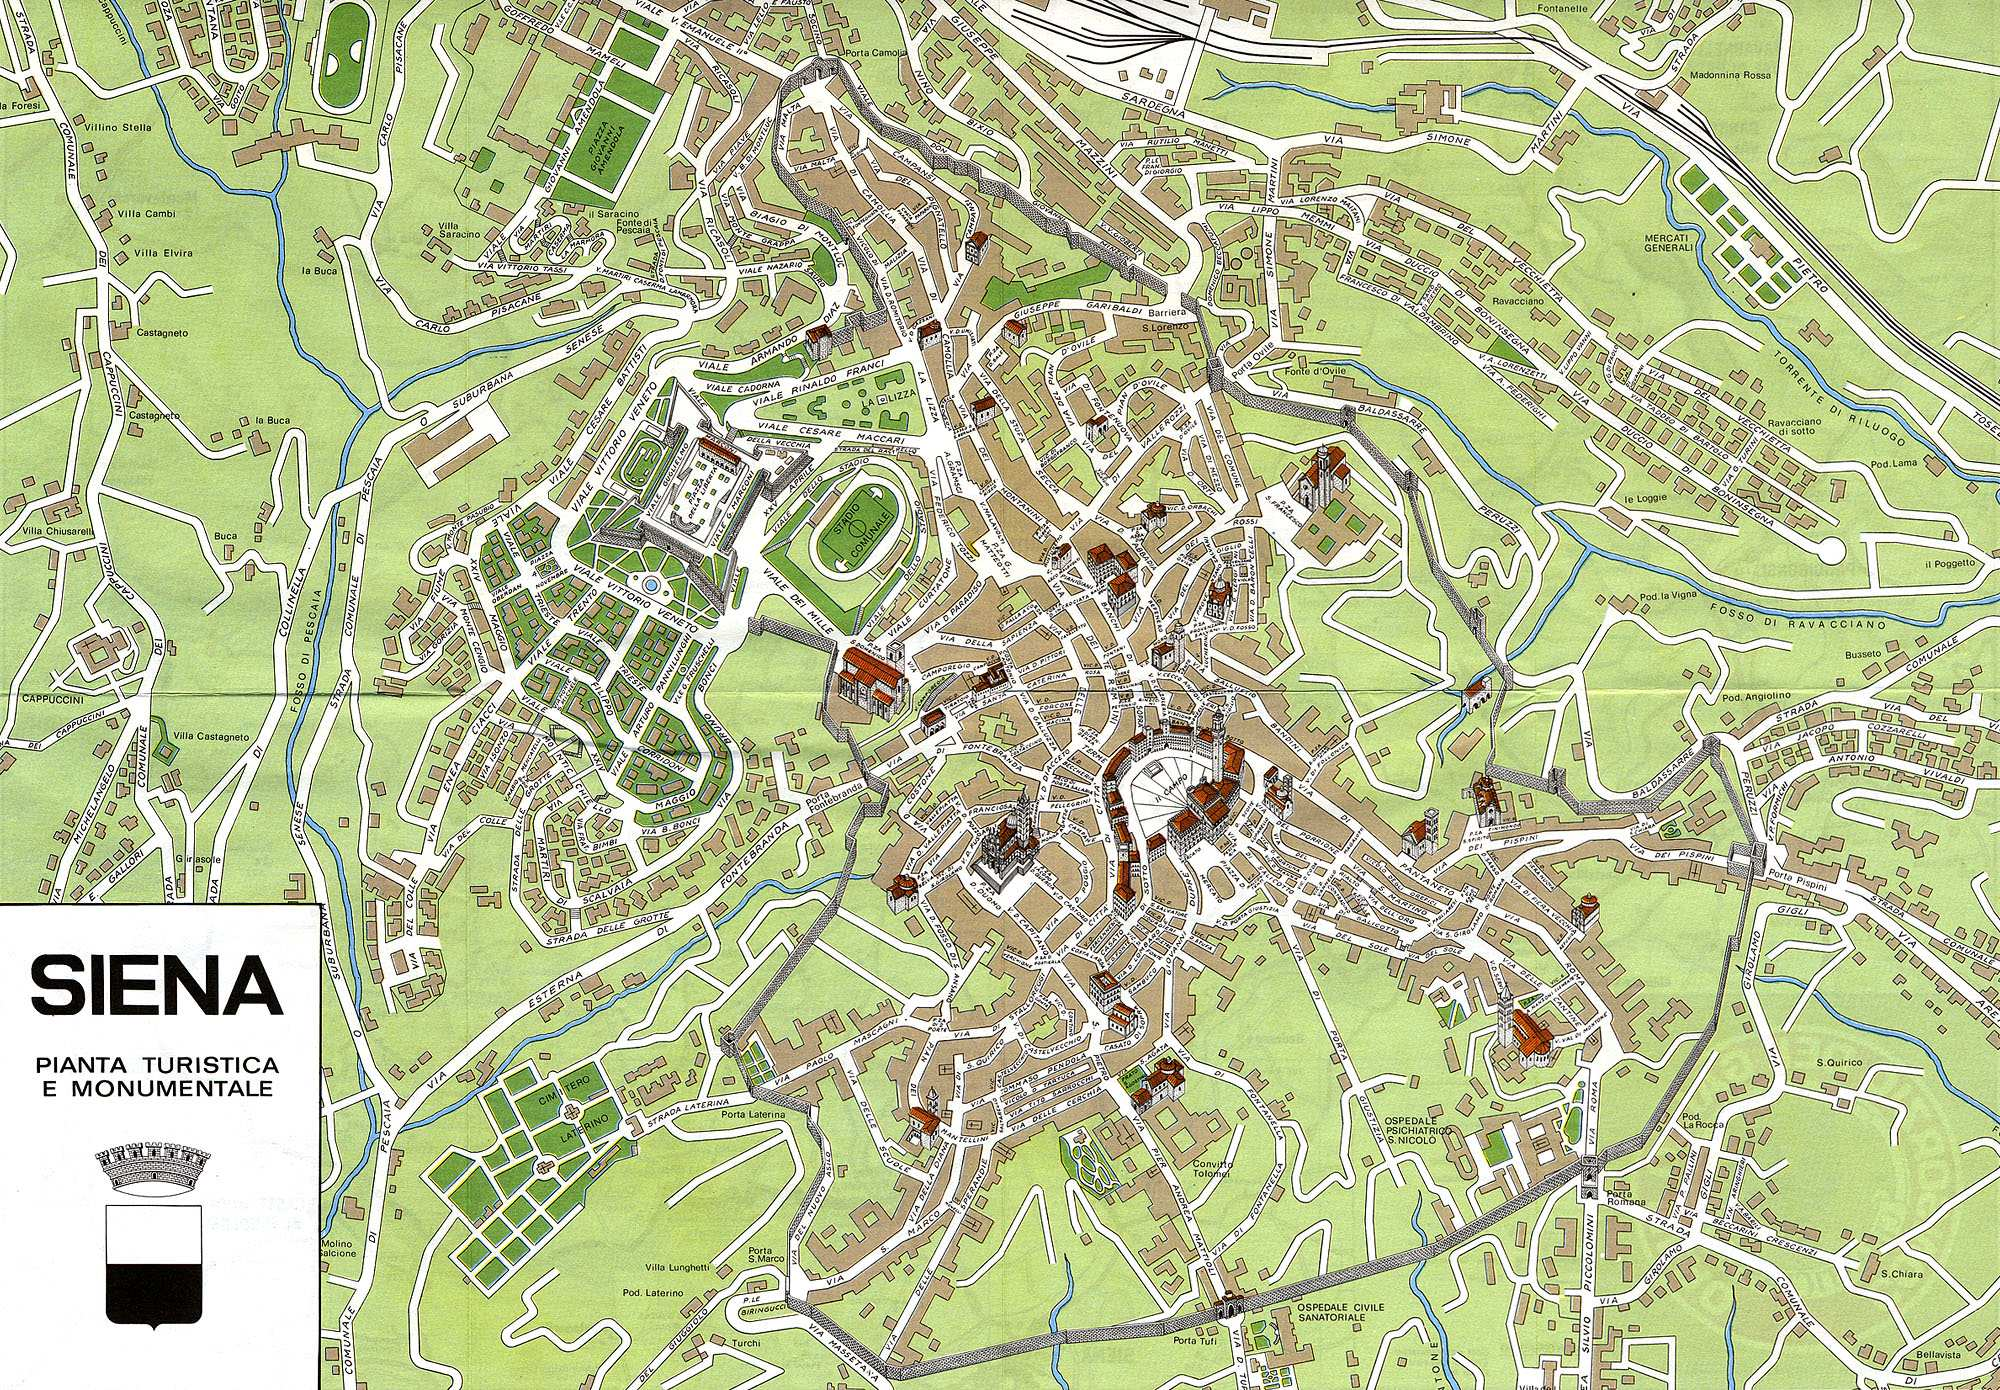 Large Siena Maps for Free Download and Print HighResolution and